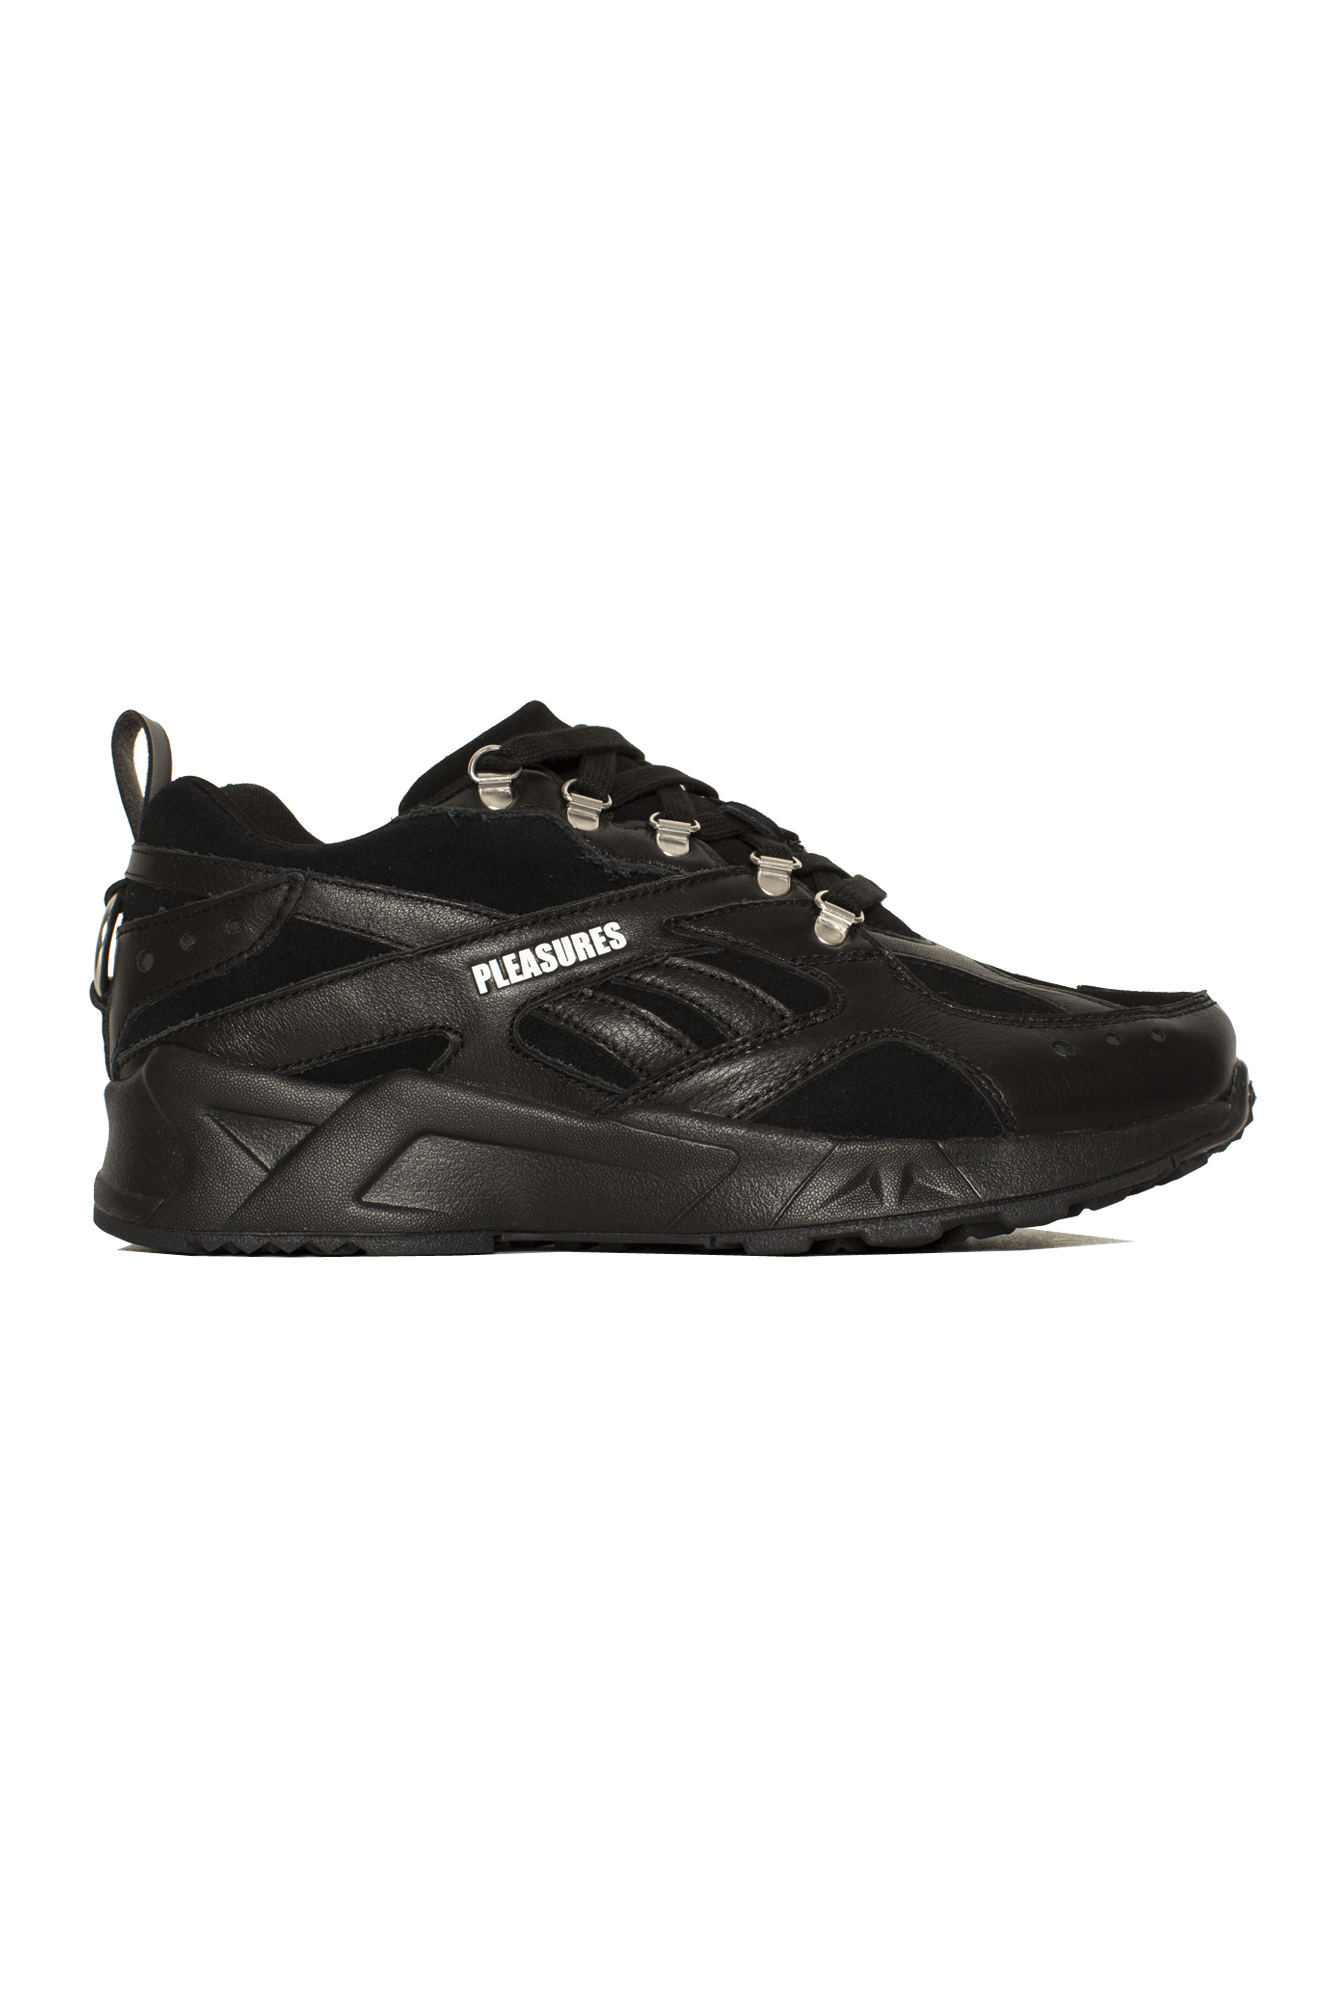 Pleasures X Reebok Aztrek Shoe Black